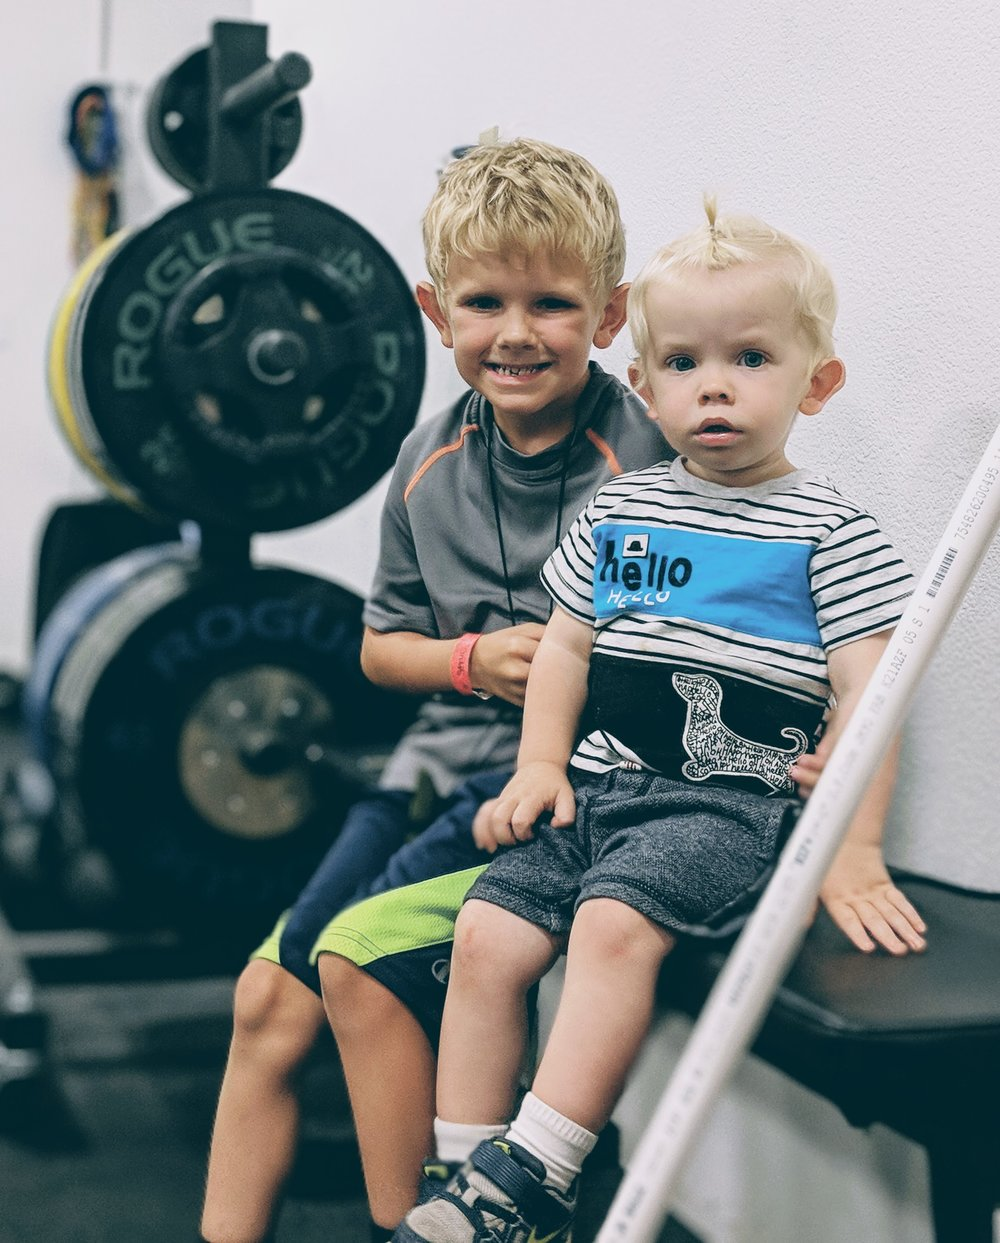 Child Care - We ARE excited to announce a new 9:30 am CrossFit class, Monday Through Friday.With this added class, childcare will now be offered at CrossFit Composure during this hour.Our Child care offering at CrossFit Composure is a way for parents to have an hour to themselves; to focus on themselves, and to have an hour of uninterrupted fitness to help prepare you for anything life can throw at you. Your children will be supervised in a safe, fun, and nurturing environment to keep them engaged and entertained while you are working on your best self!Childcare Guidelines and general rules